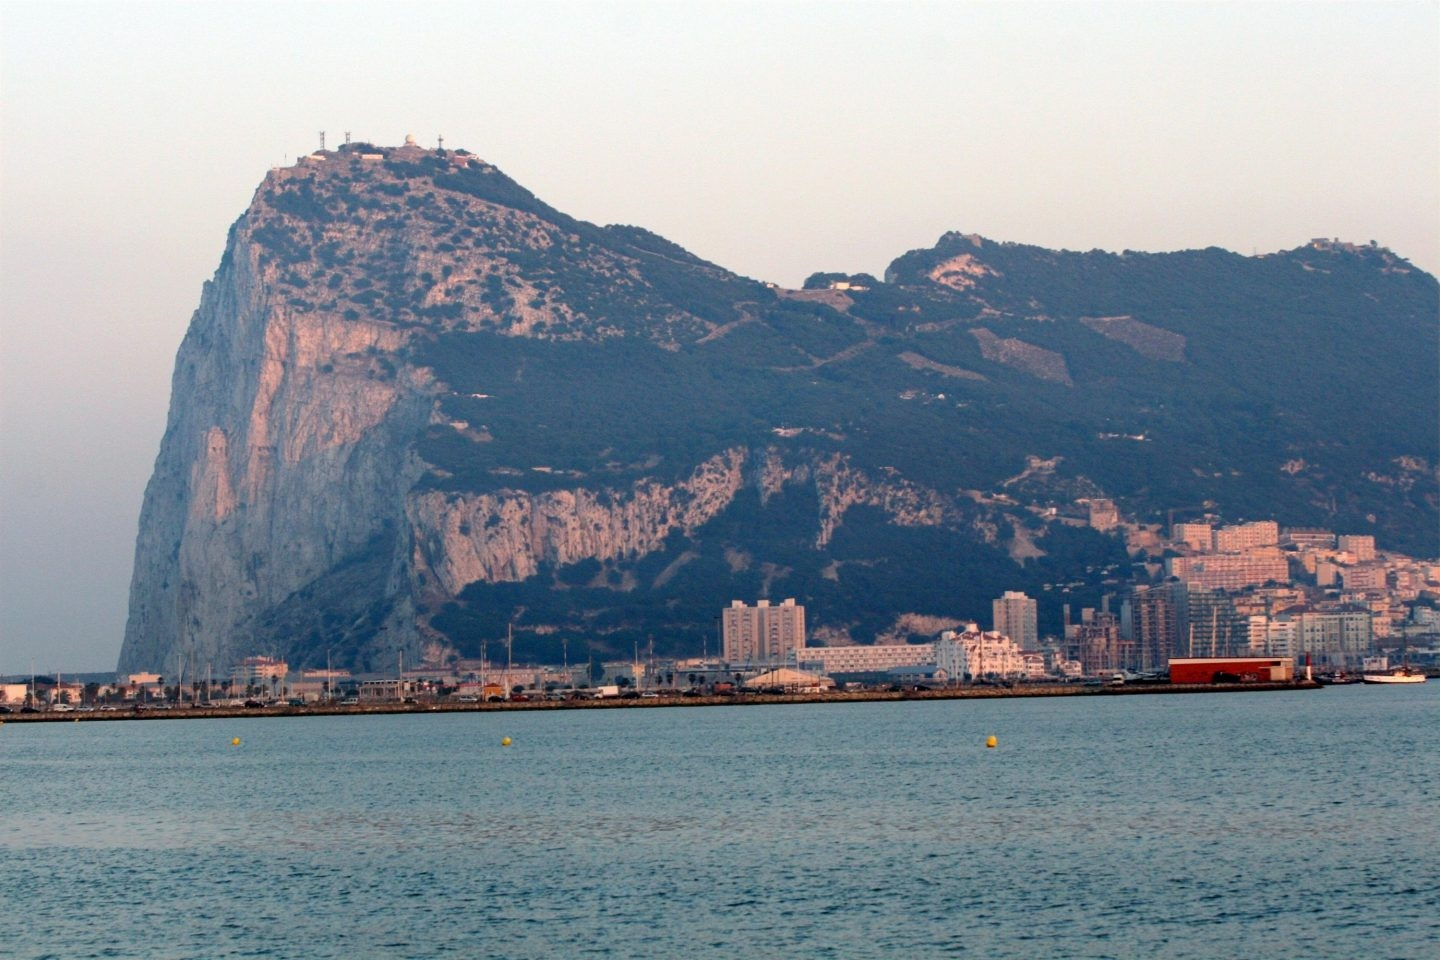 Peñón de Gibraltar.